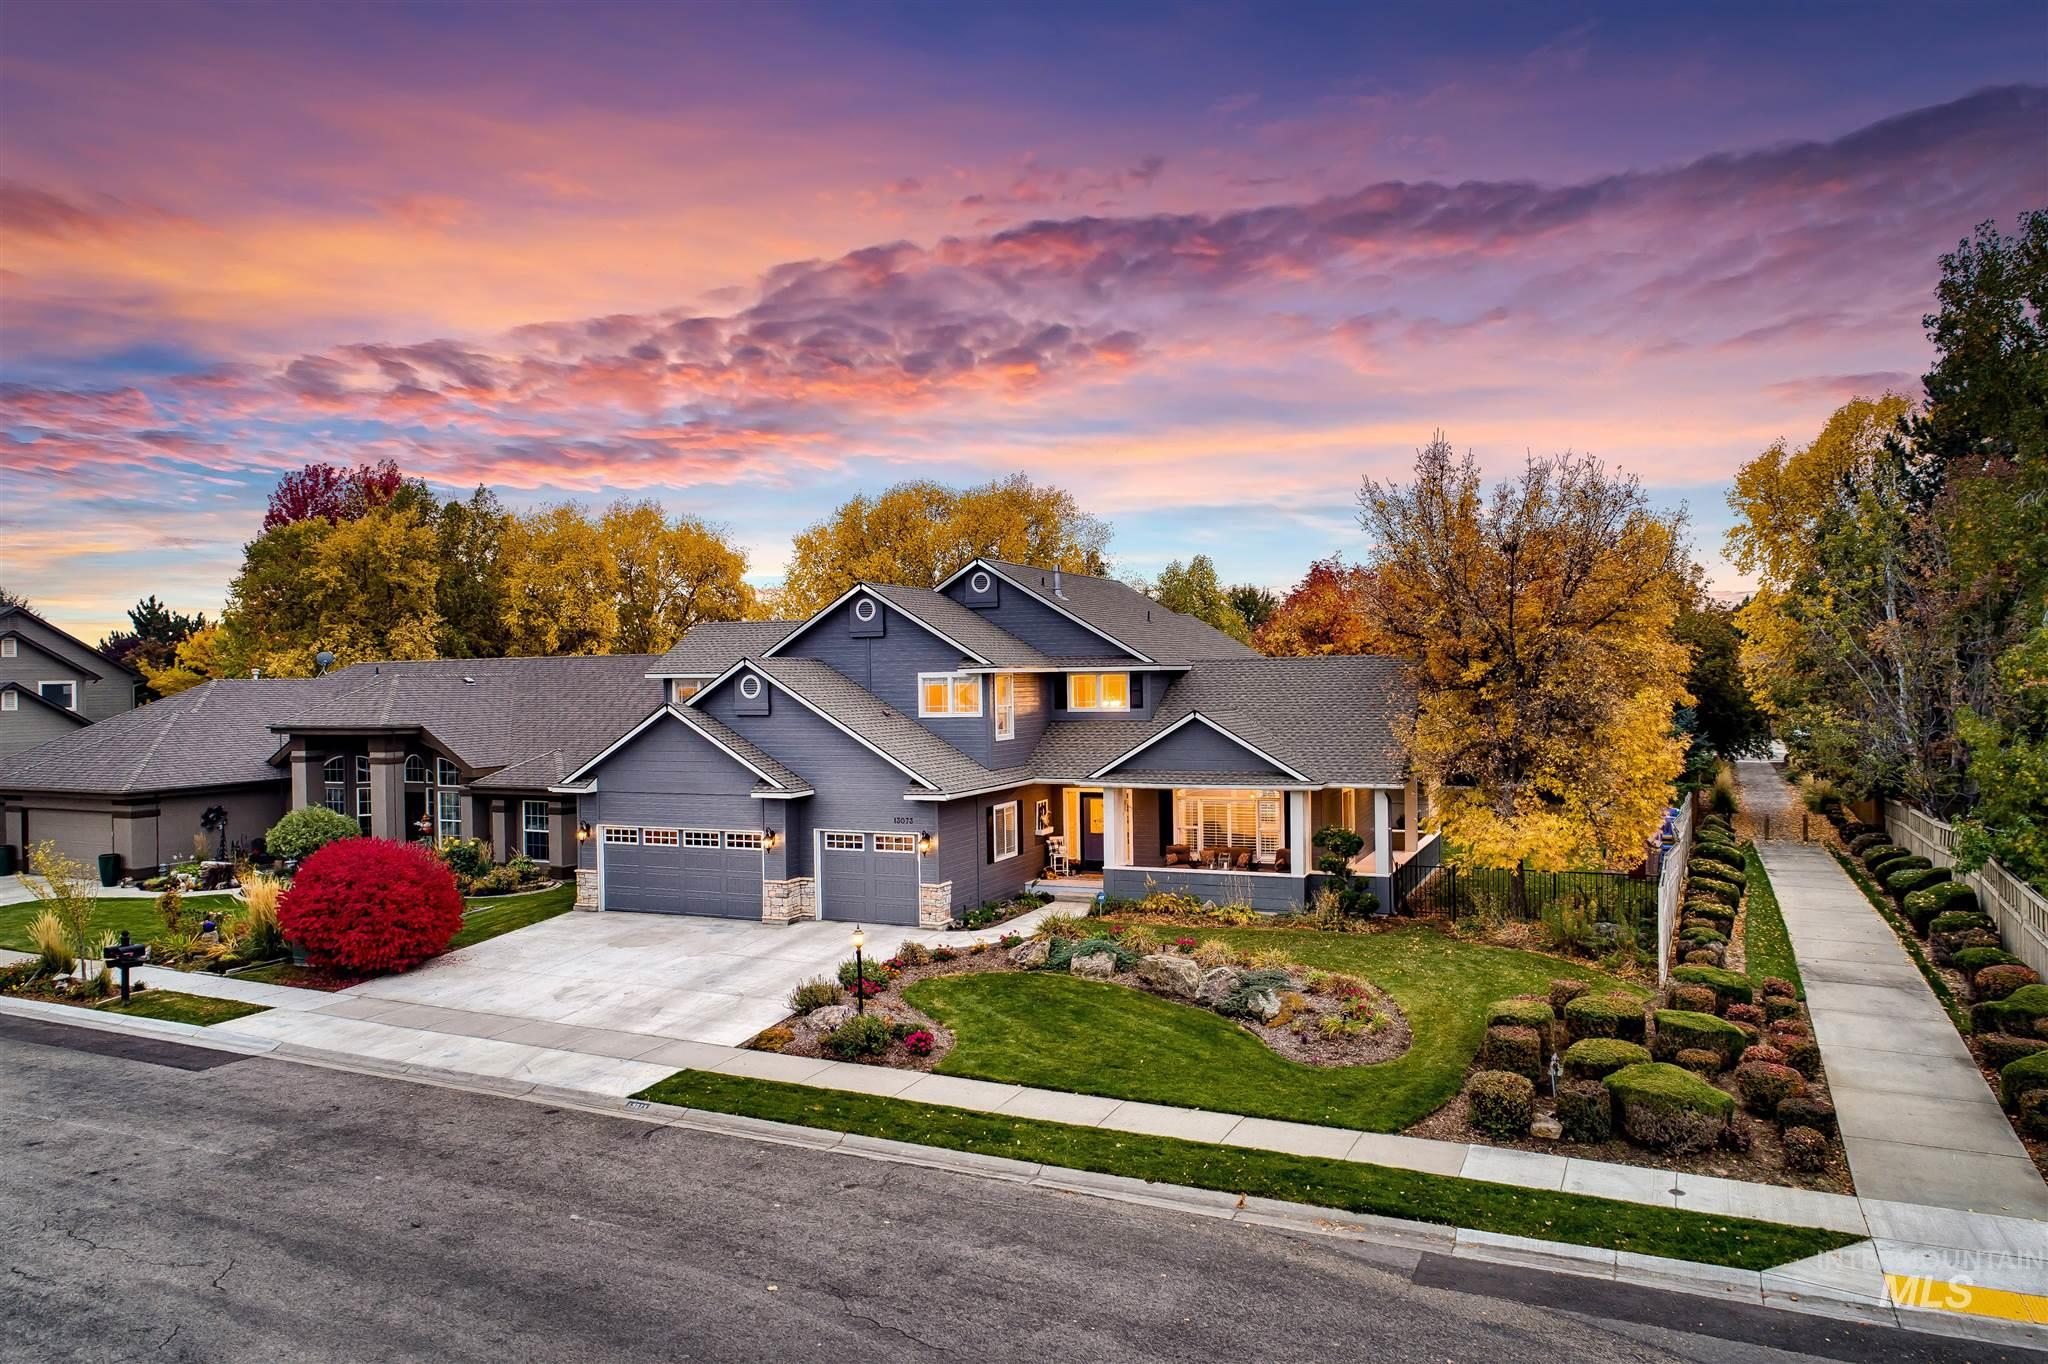 13073 W Elmspring St, Boise, Idaho 83713, 7 Bedrooms, 4 Bathrooms, Residential For Sale, Price $725,000, 98784981